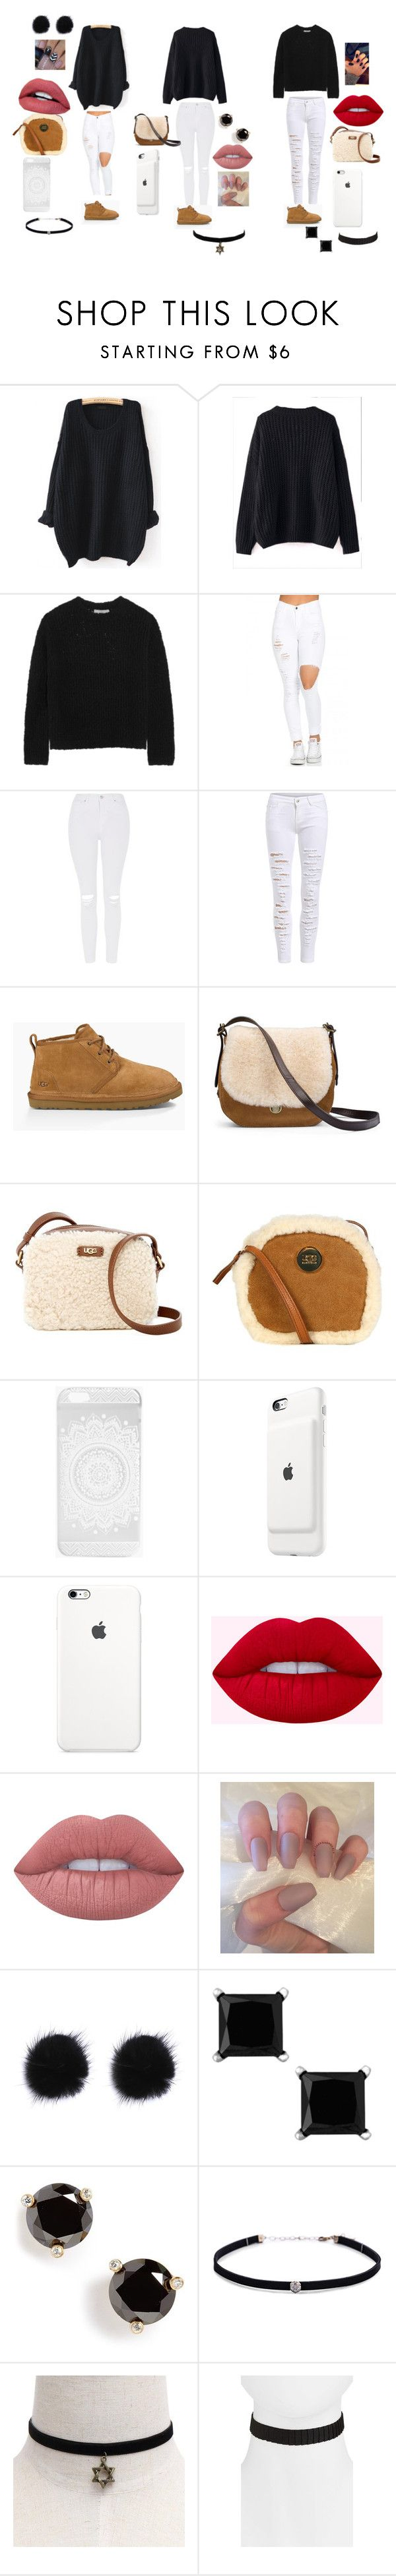 """""""Date night PT.1"""" by blackjanija on Polyvore featuring WithChic, Vince, Topshop, UGG Australia, UGG, Boohoo, Apple, Lime Crime, Kate Spade and Carbon & Hyde"""